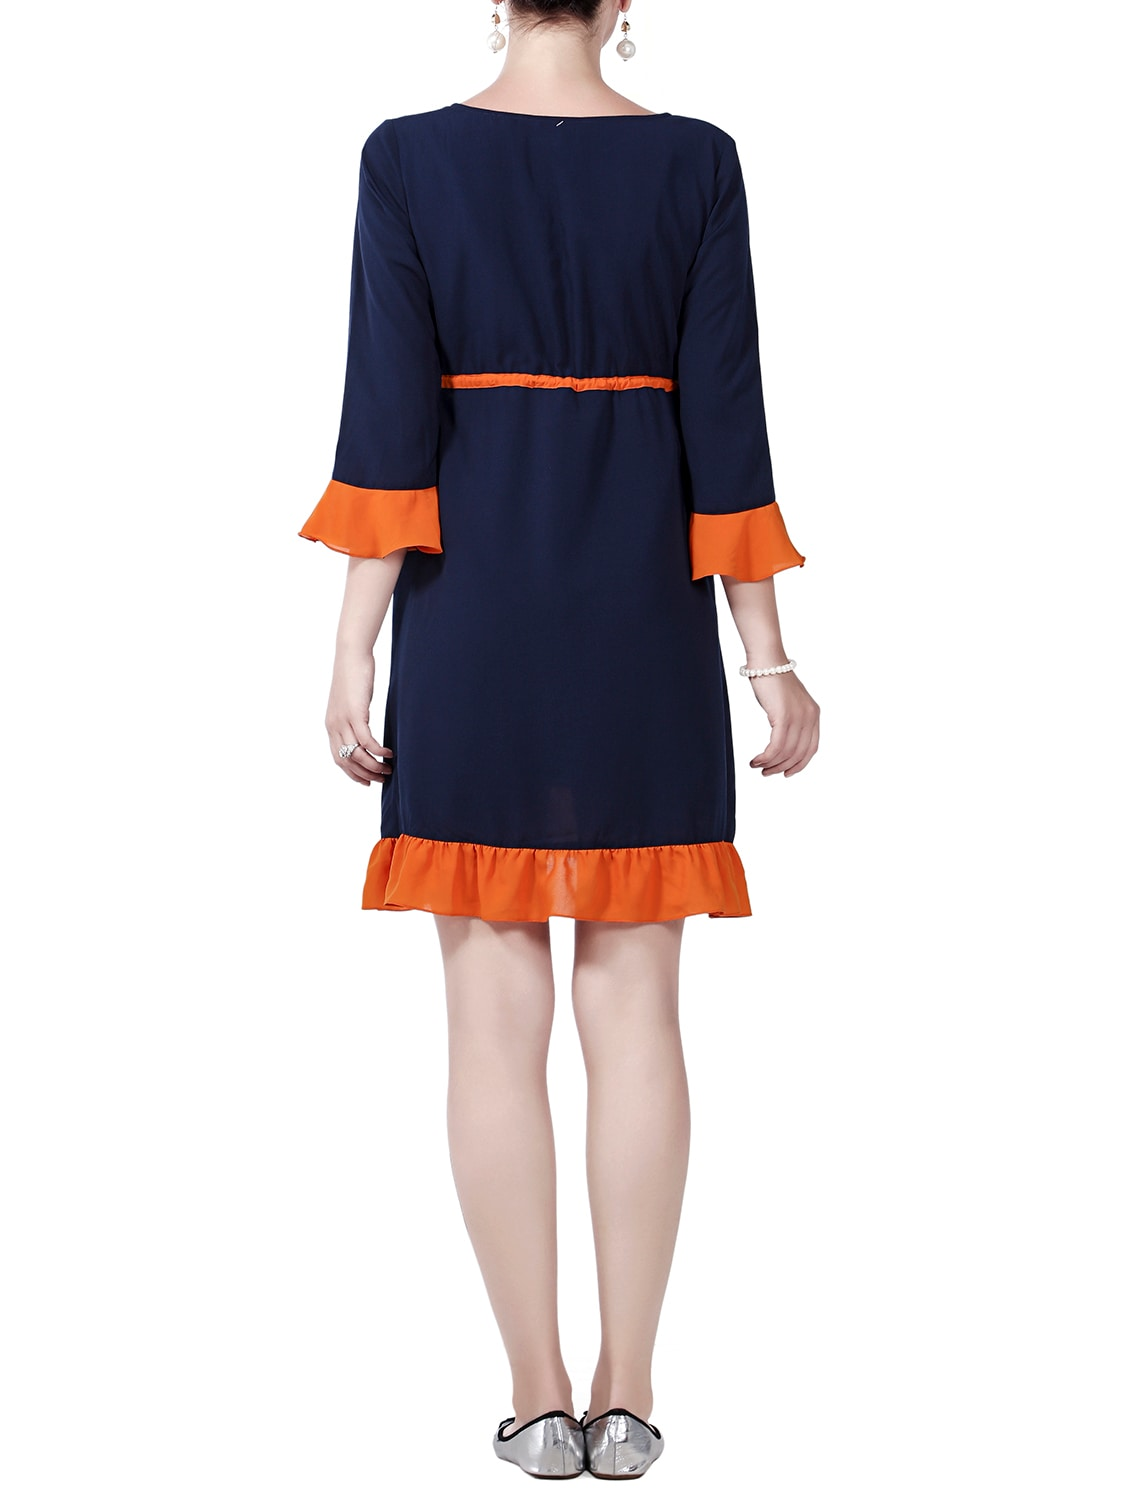 0022dcc6ea0 Buy Navy Blue Maternity Wear Dress for Women from Innovative for ₹1042 at 30%  off